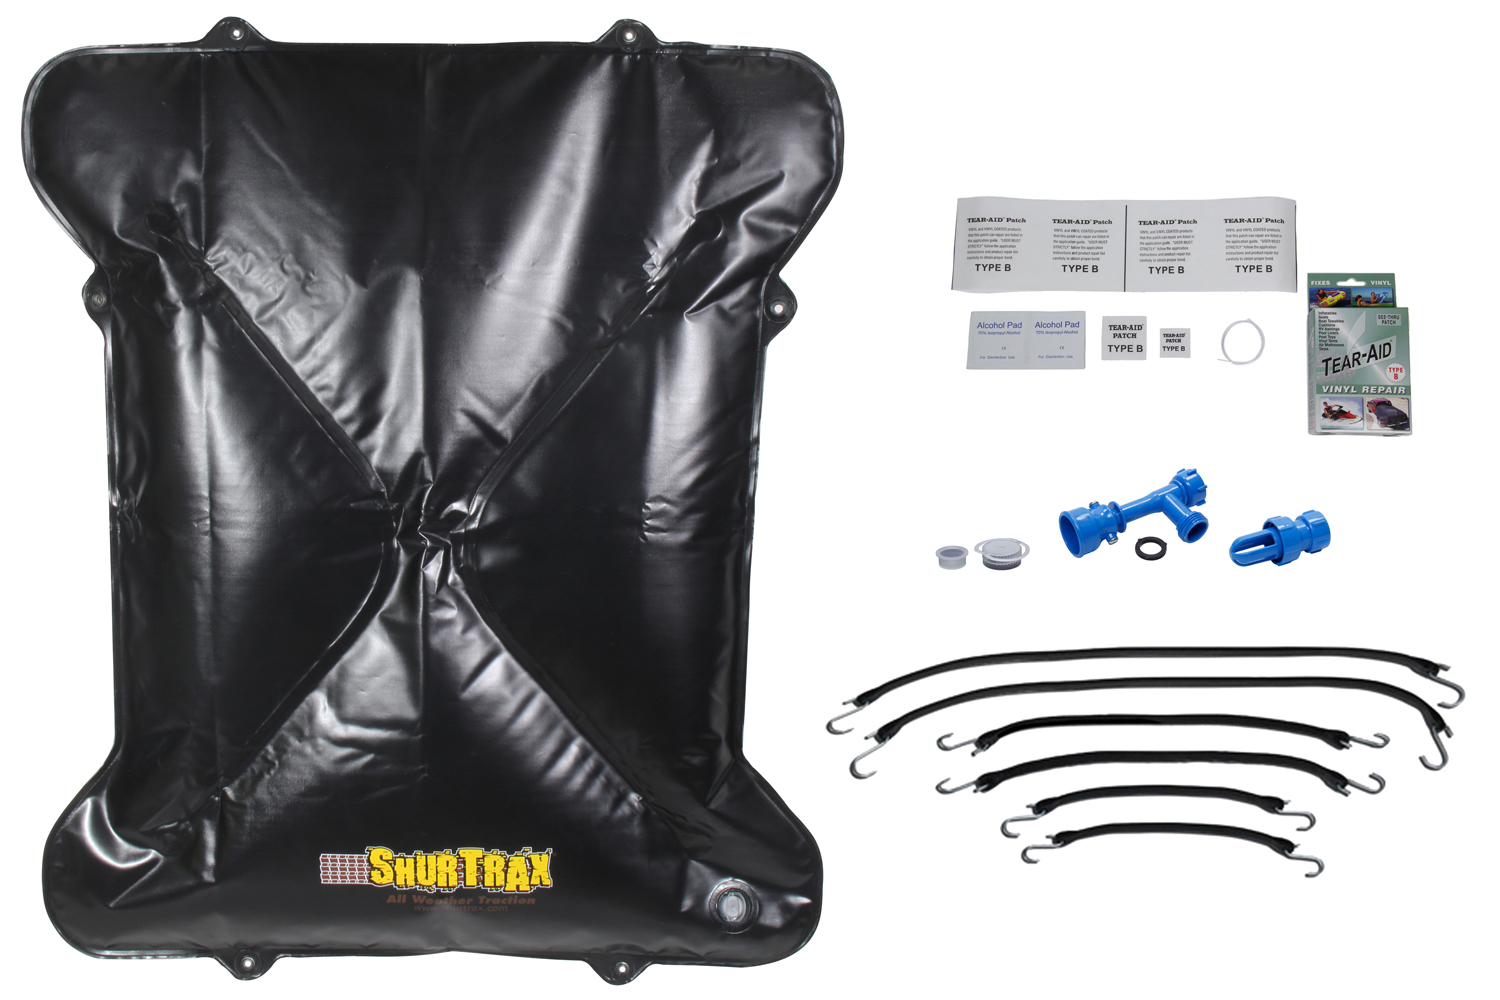 Shurtrax Compact Truck Traction Aid w/Repair Kit